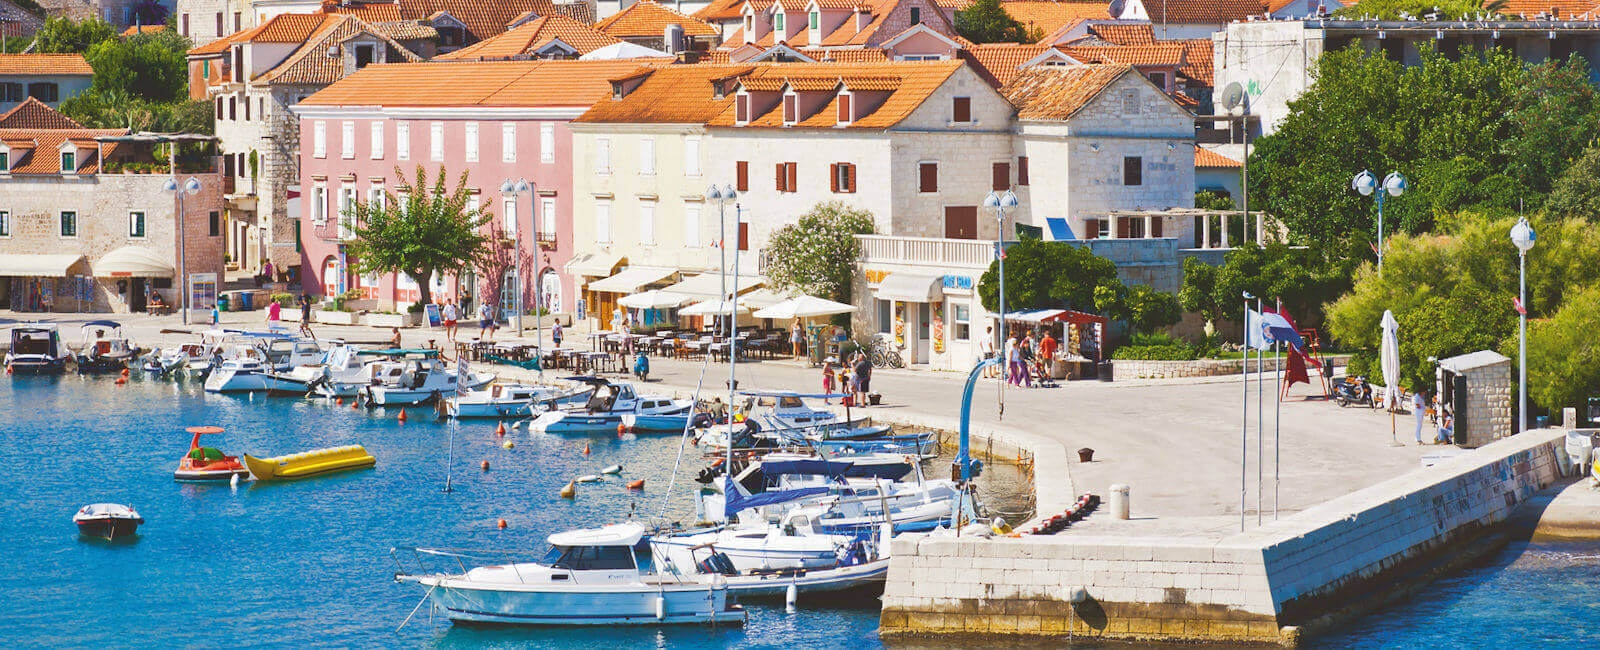 supetar harbour, brac island